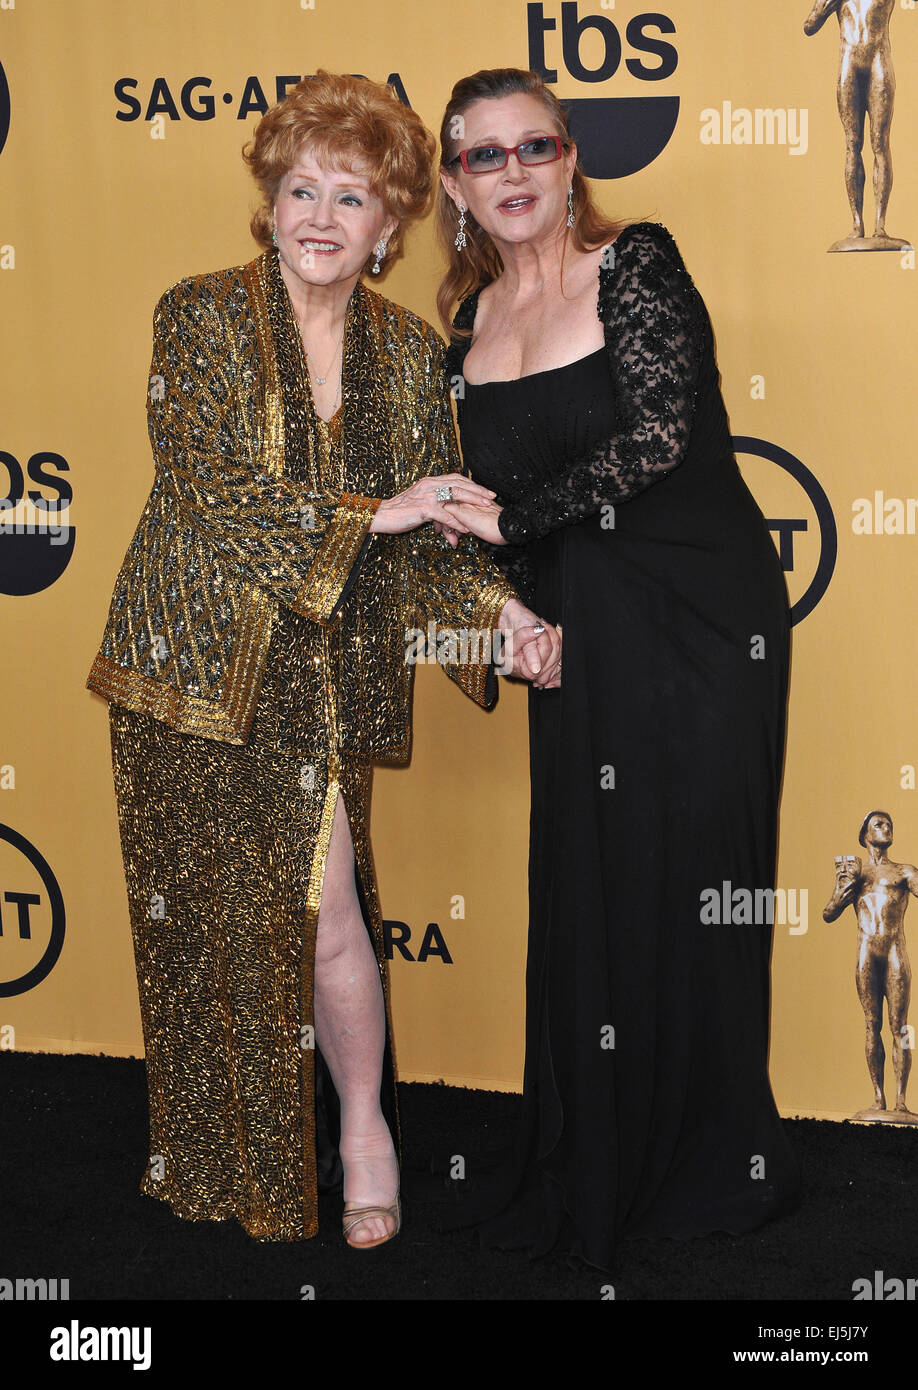 LOS ANGELES, CA - JANUARY 25, 2015: Debbie Reynolds & daughter Carrie Fisher at the 2015 Screen Actors Guild - Stock Image